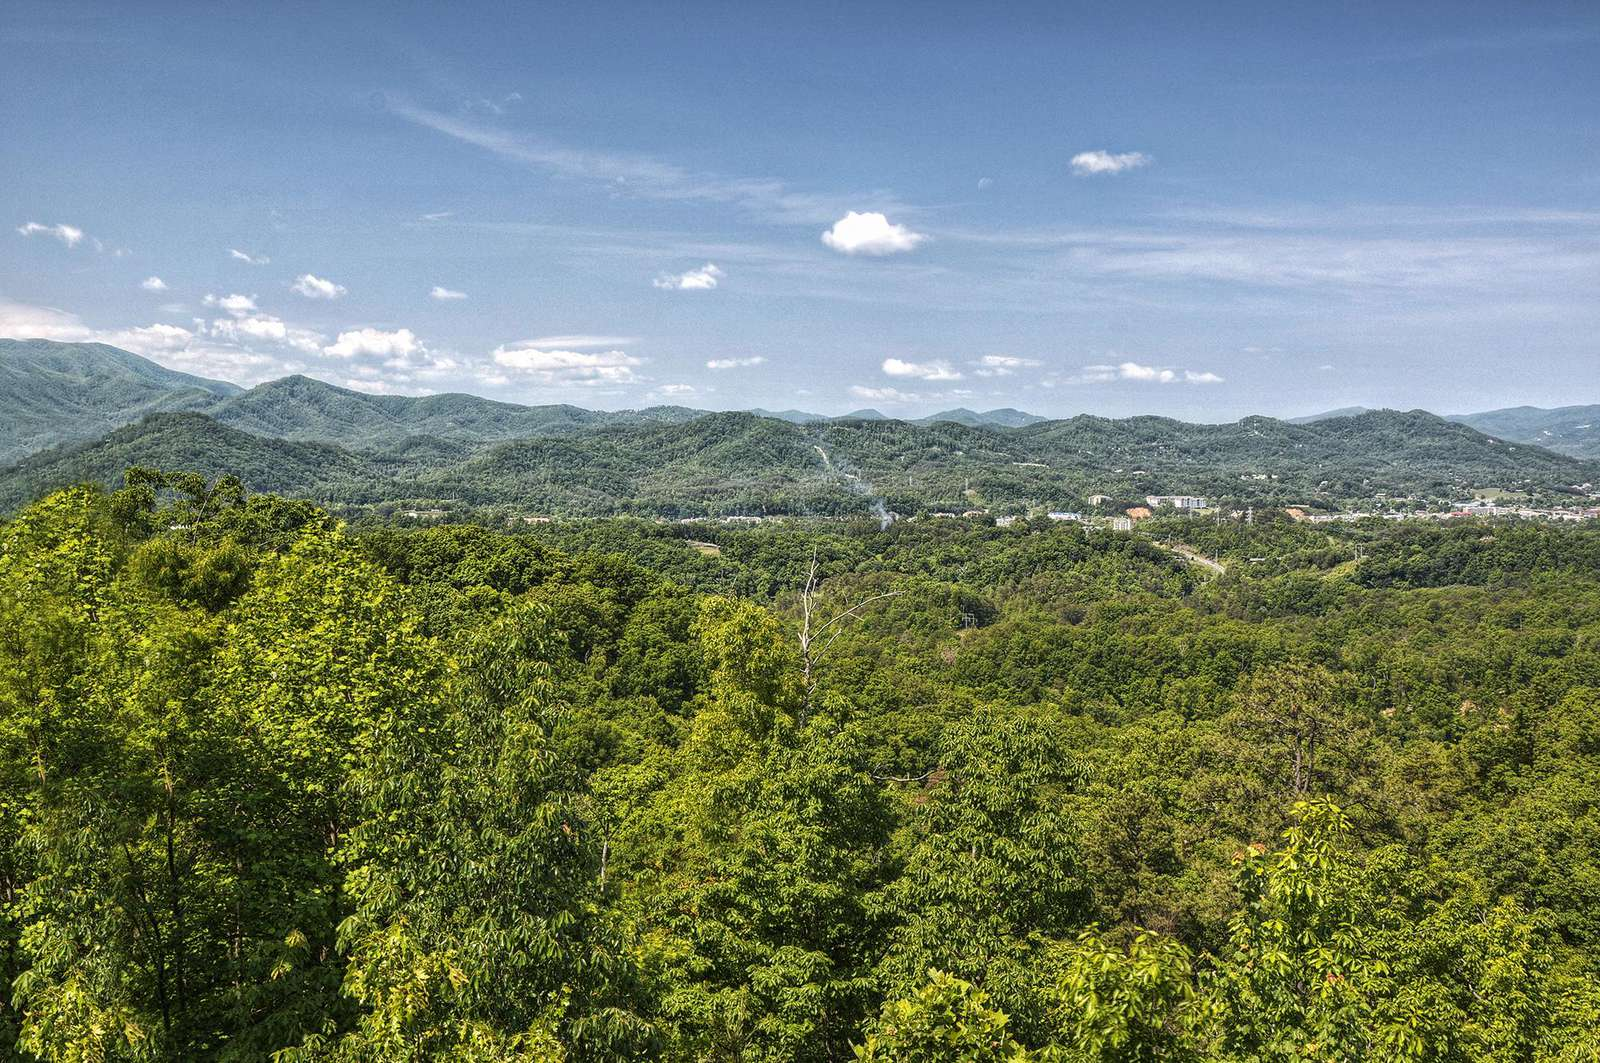 Beautiful Pigeon Forge City & Bluff Mountain Views from Cabin Porch